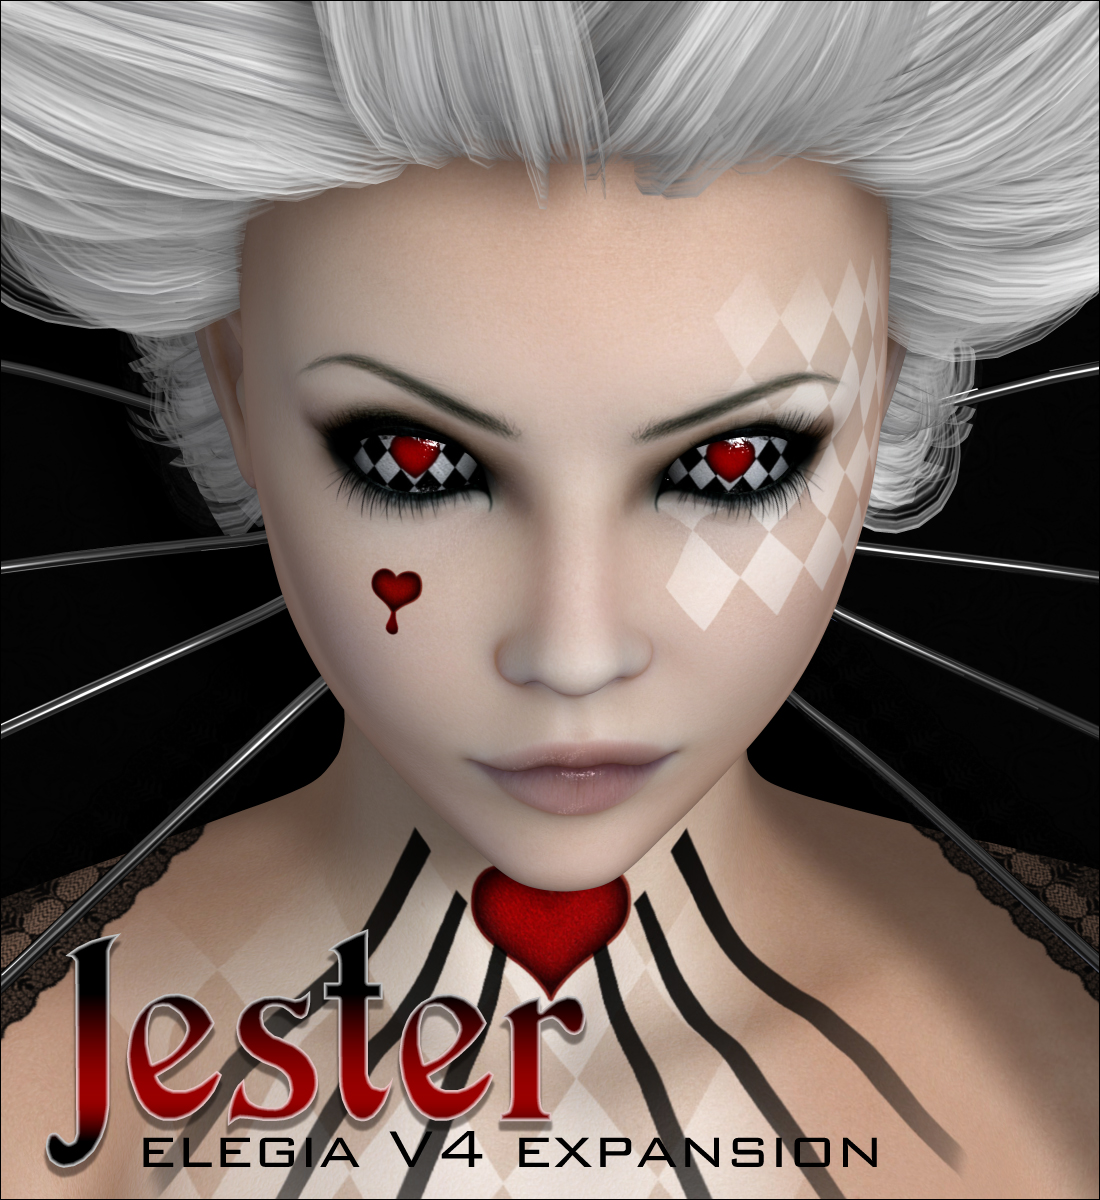 Jester - Elegia V4 Expansion by digiPixel